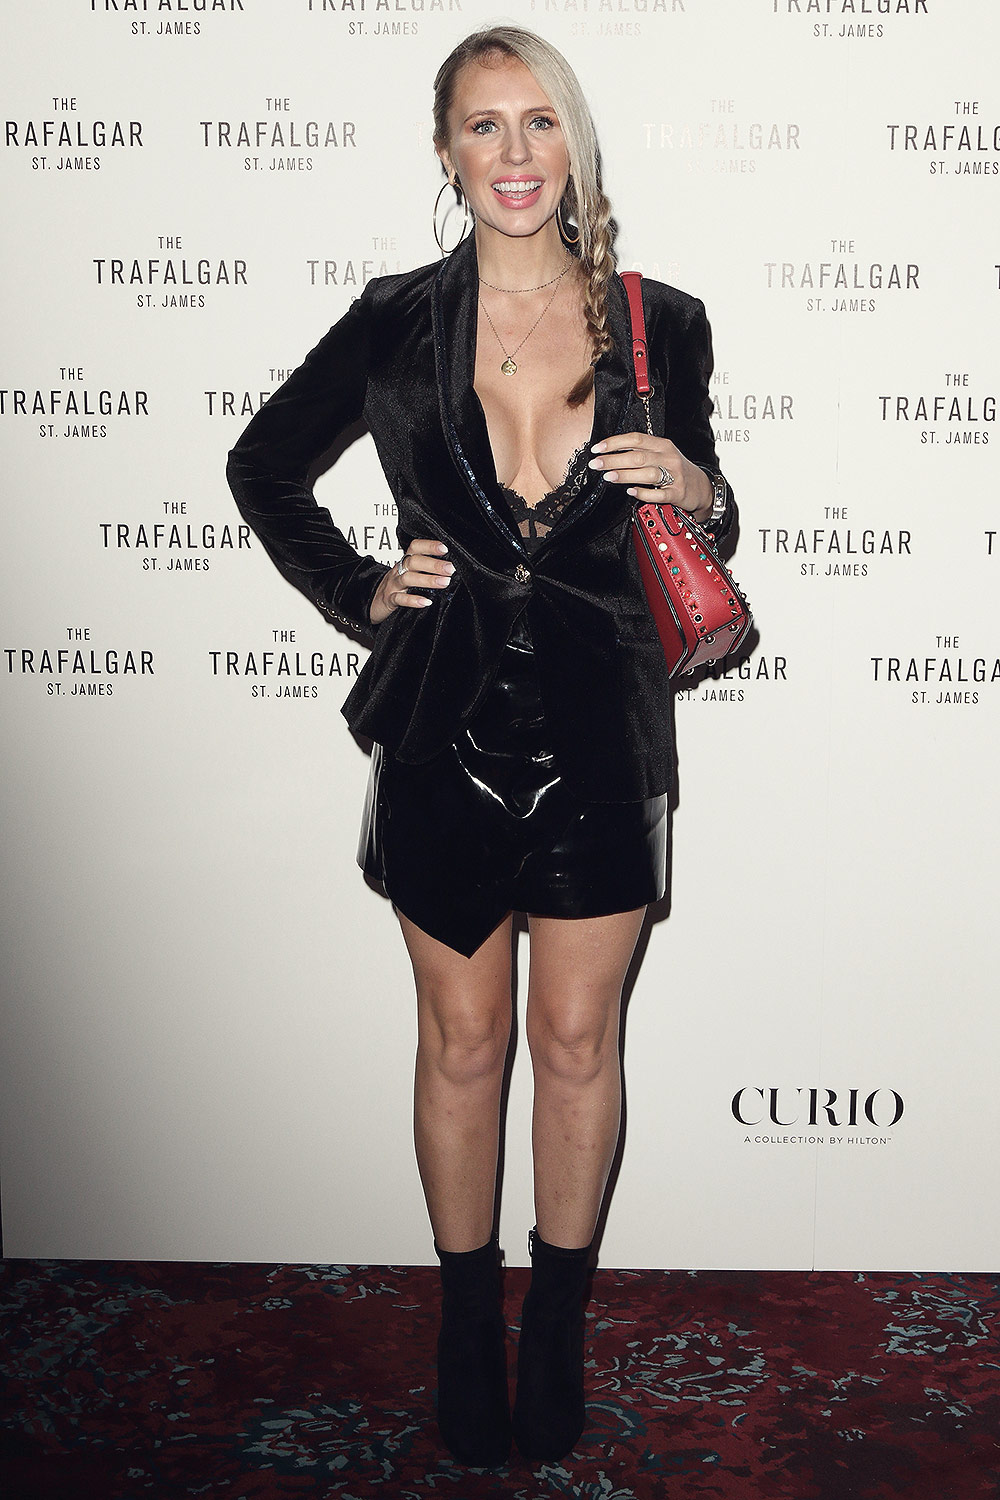 Naomi Isted attends Trafalgar St James Official Launch Party